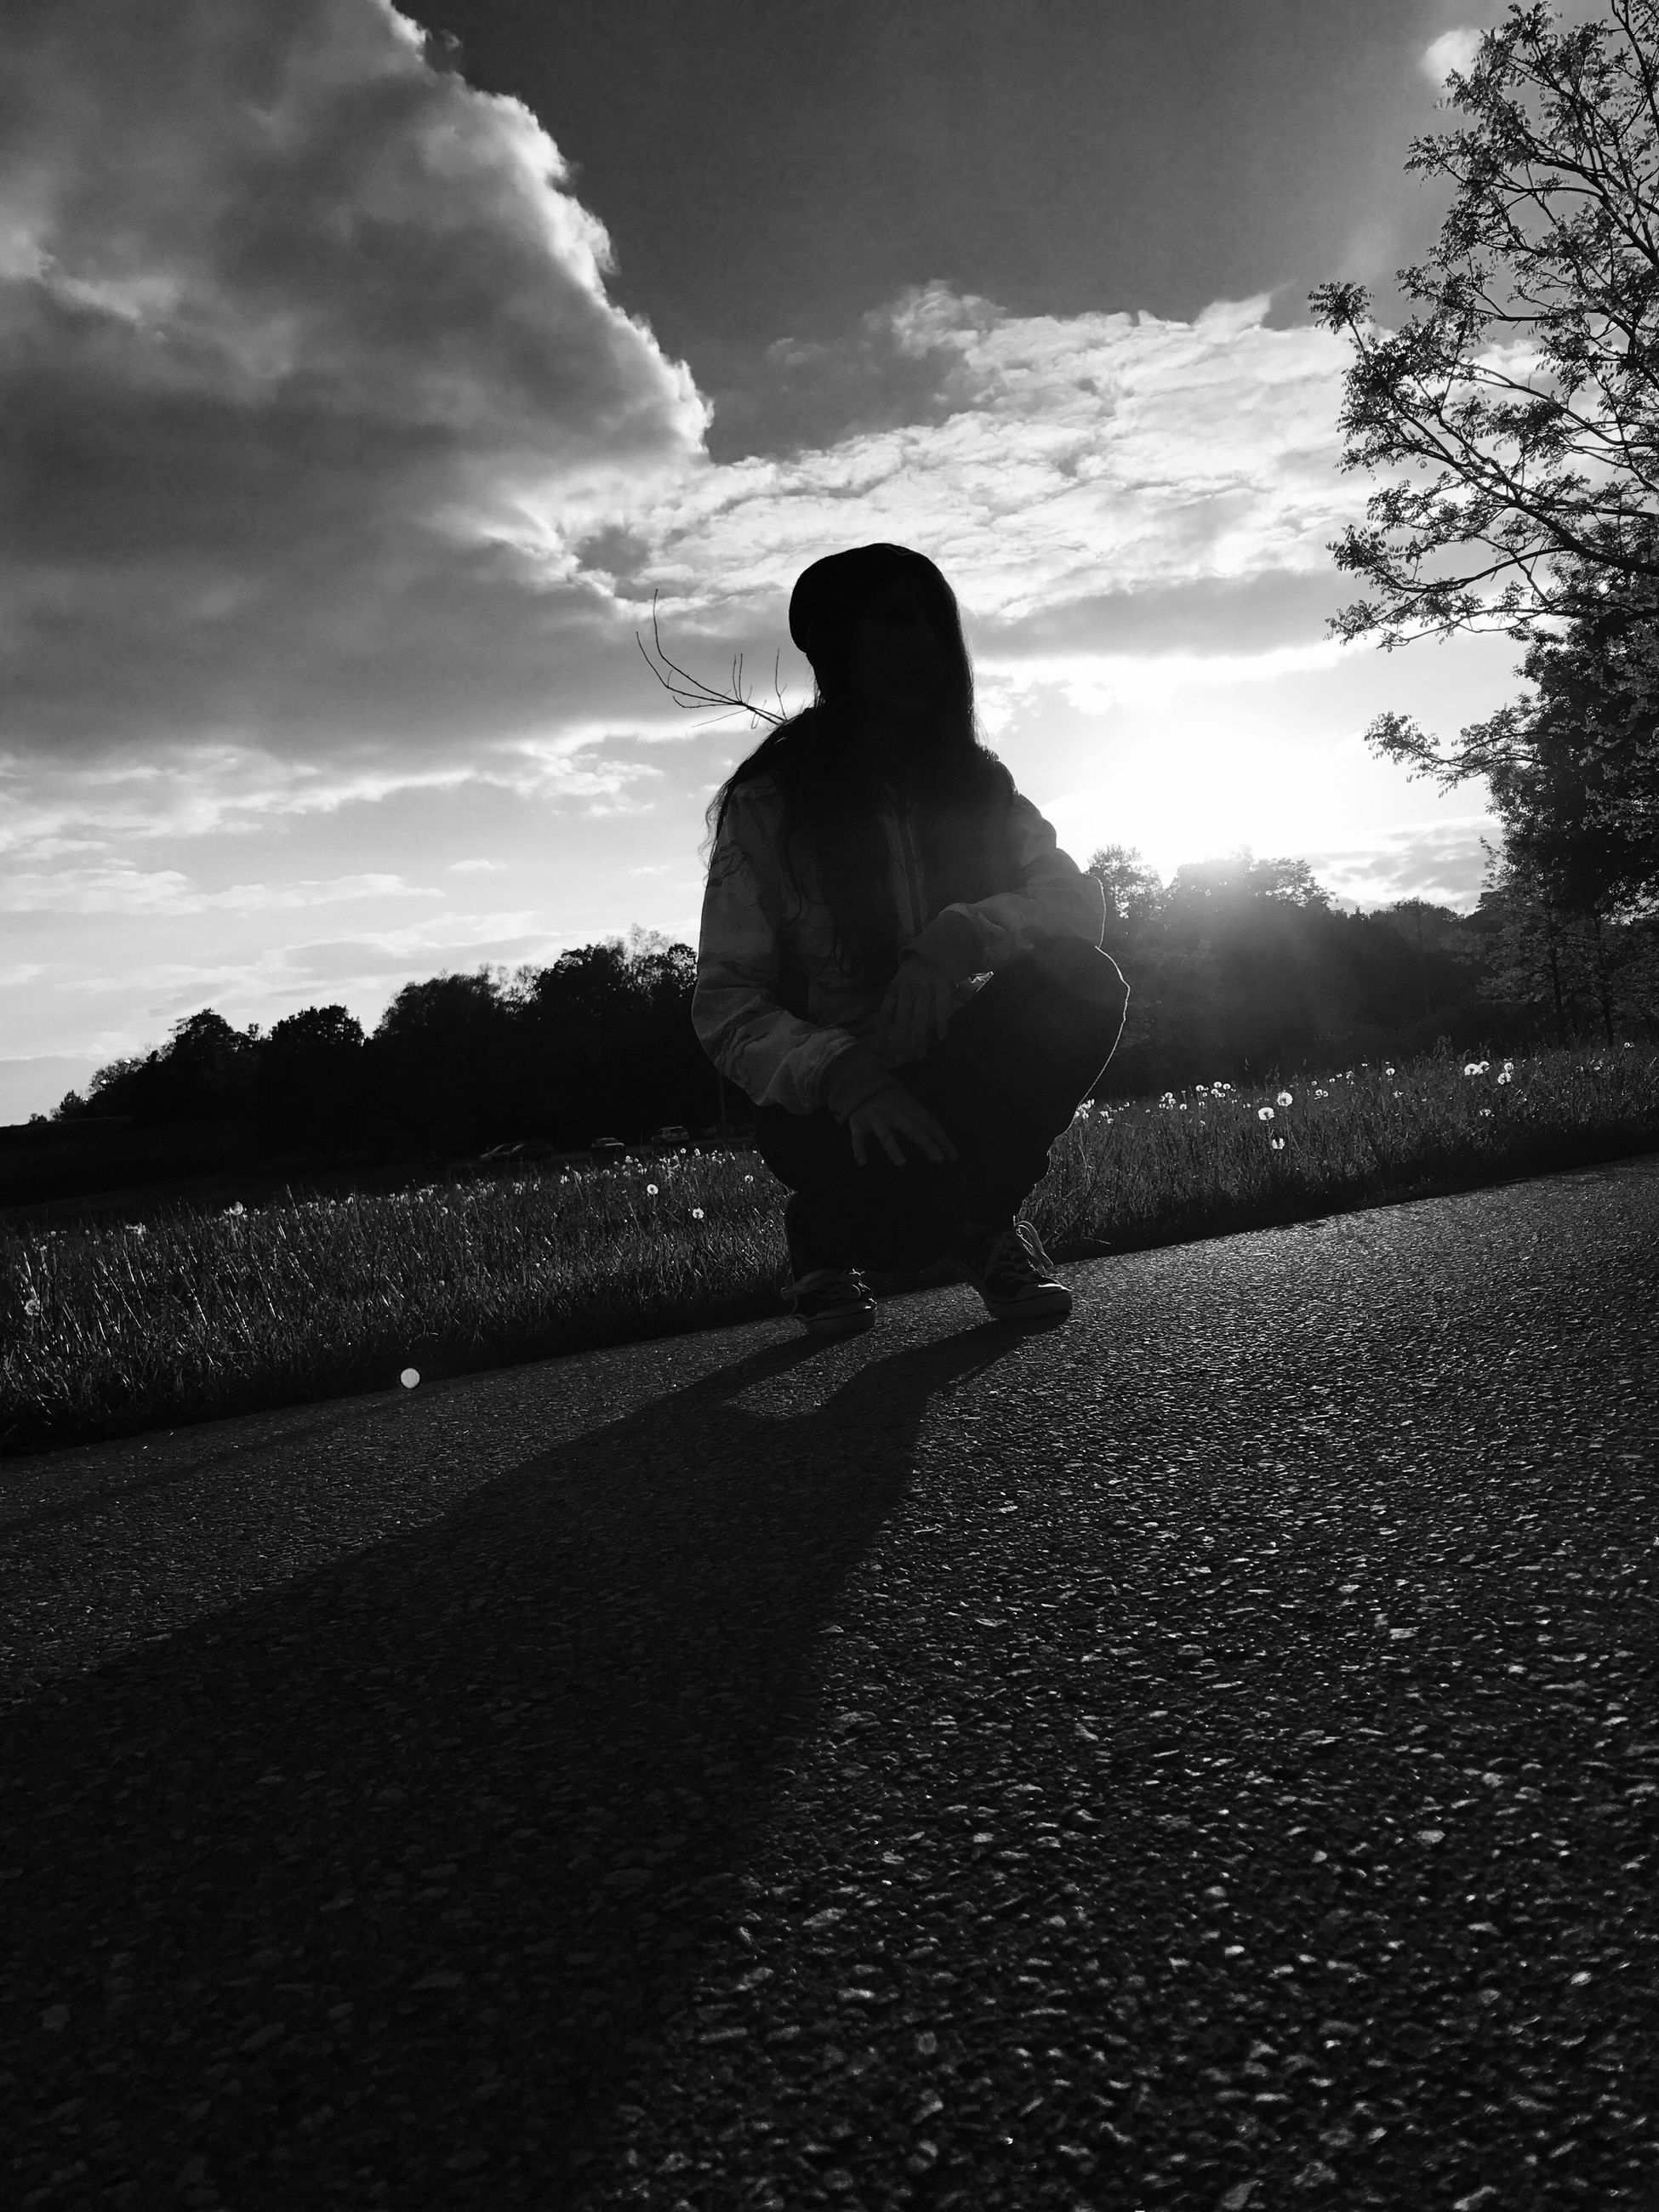 one person, full length, real people, leisure activity, sunlight, lifestyles, sky, outdoors, silhouette, women, road, shadow, nature, day, people